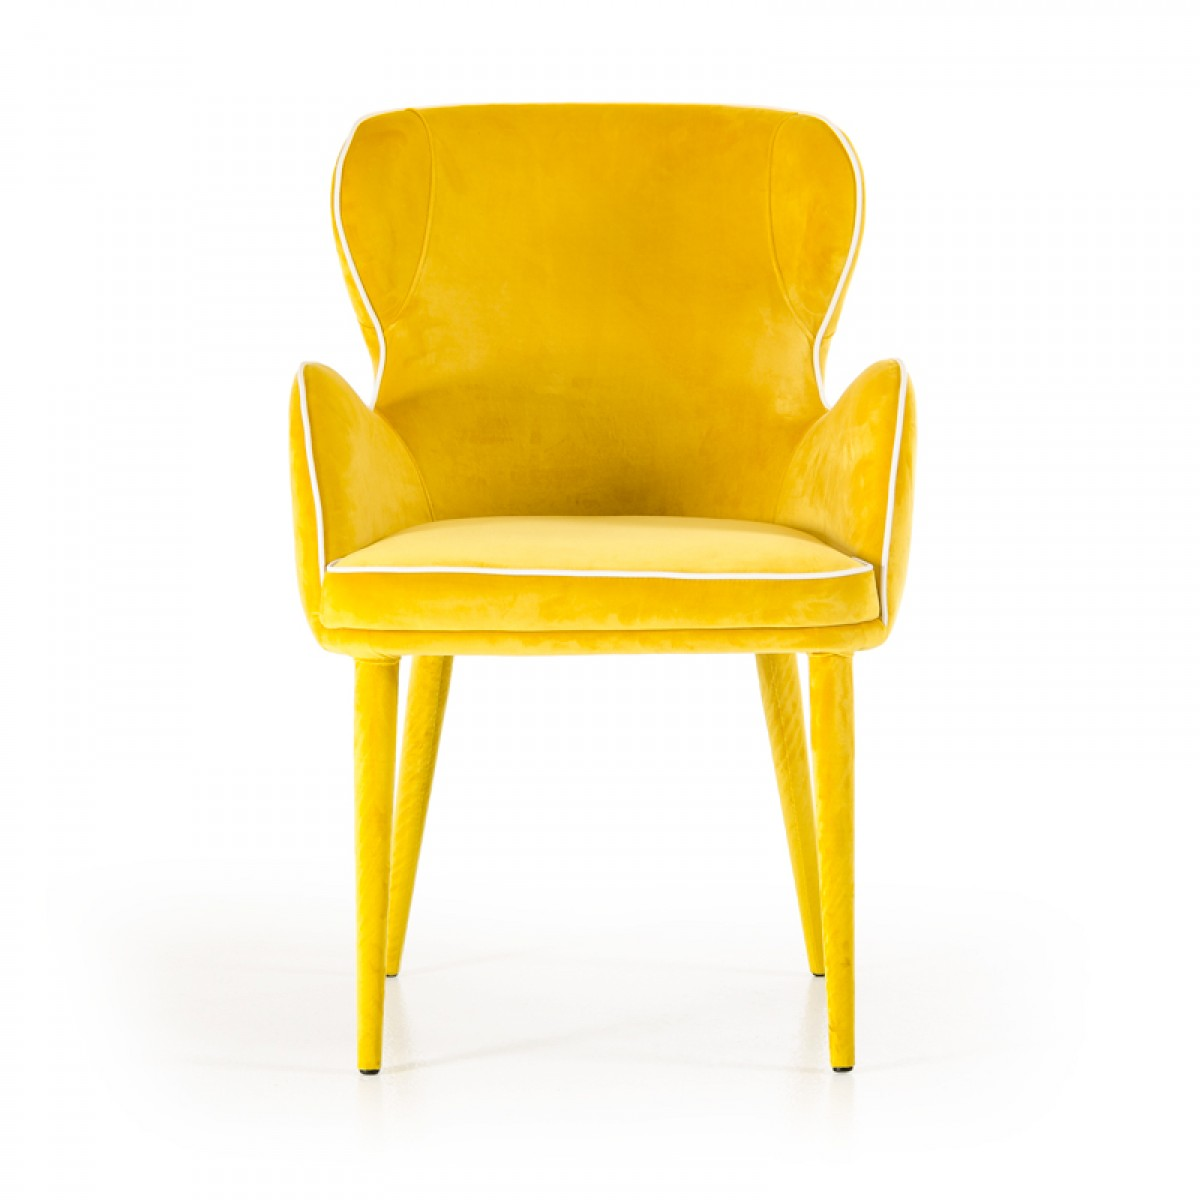 Modrest tigard modern yellow fabric dining chair dining for Modern yellow dining chairs